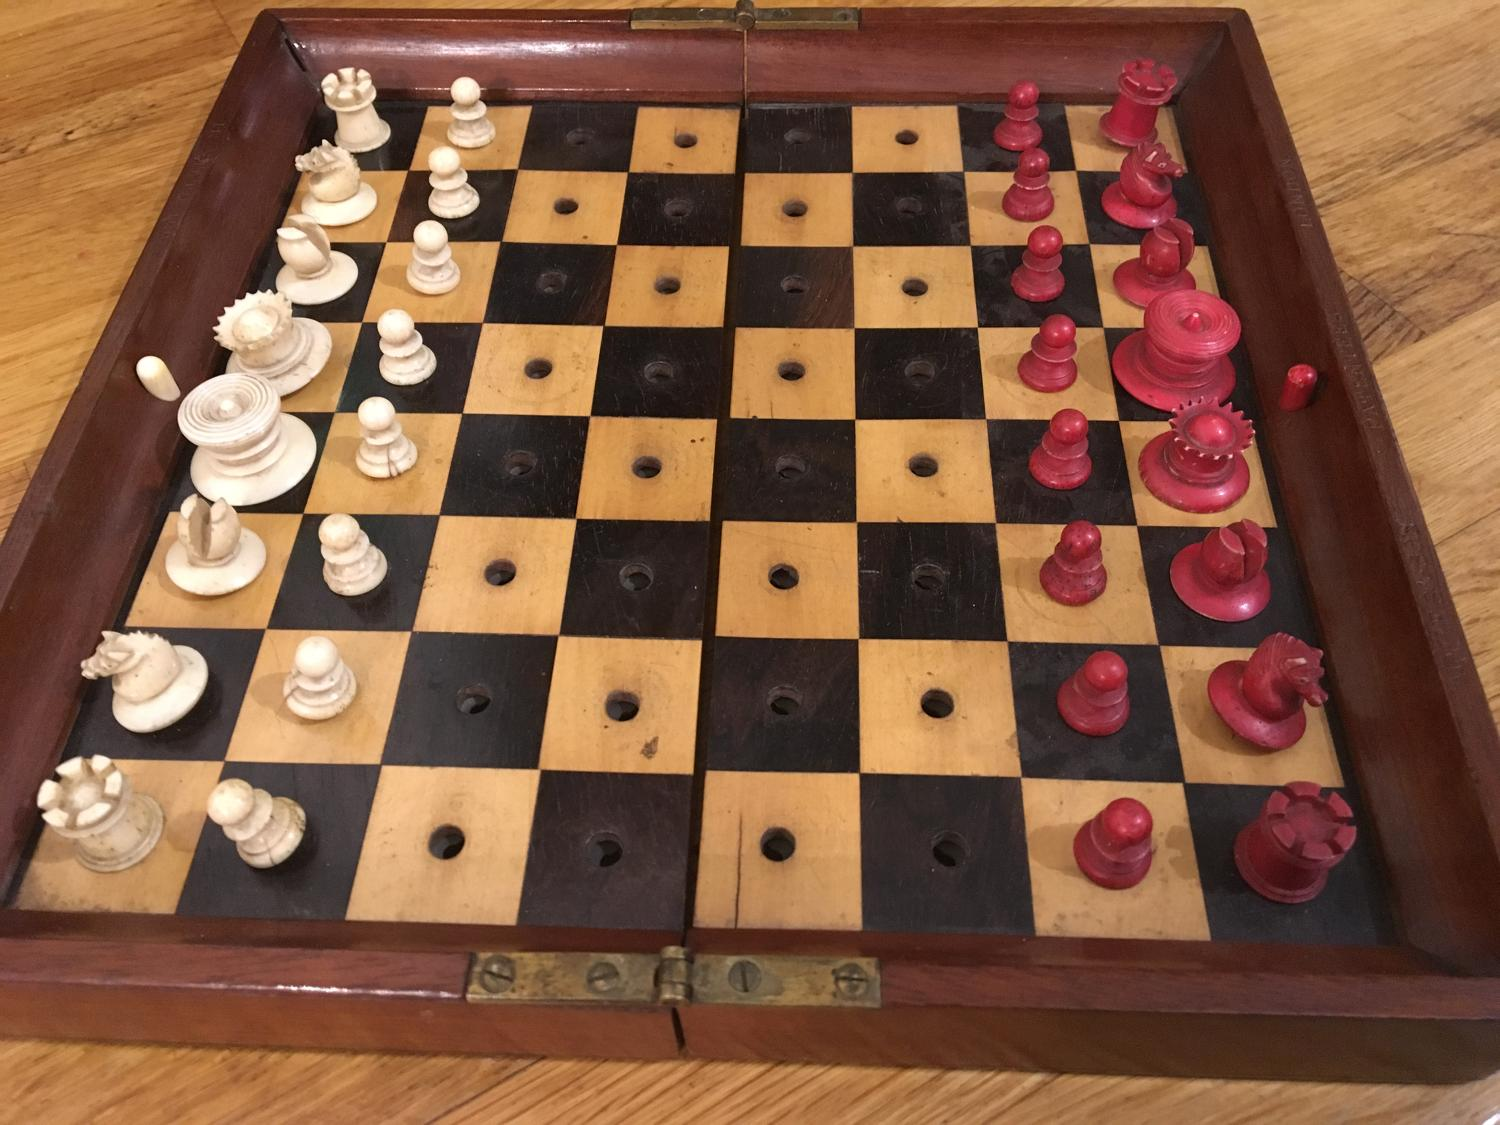 Jaques 'In Status Quo' travelling chess set